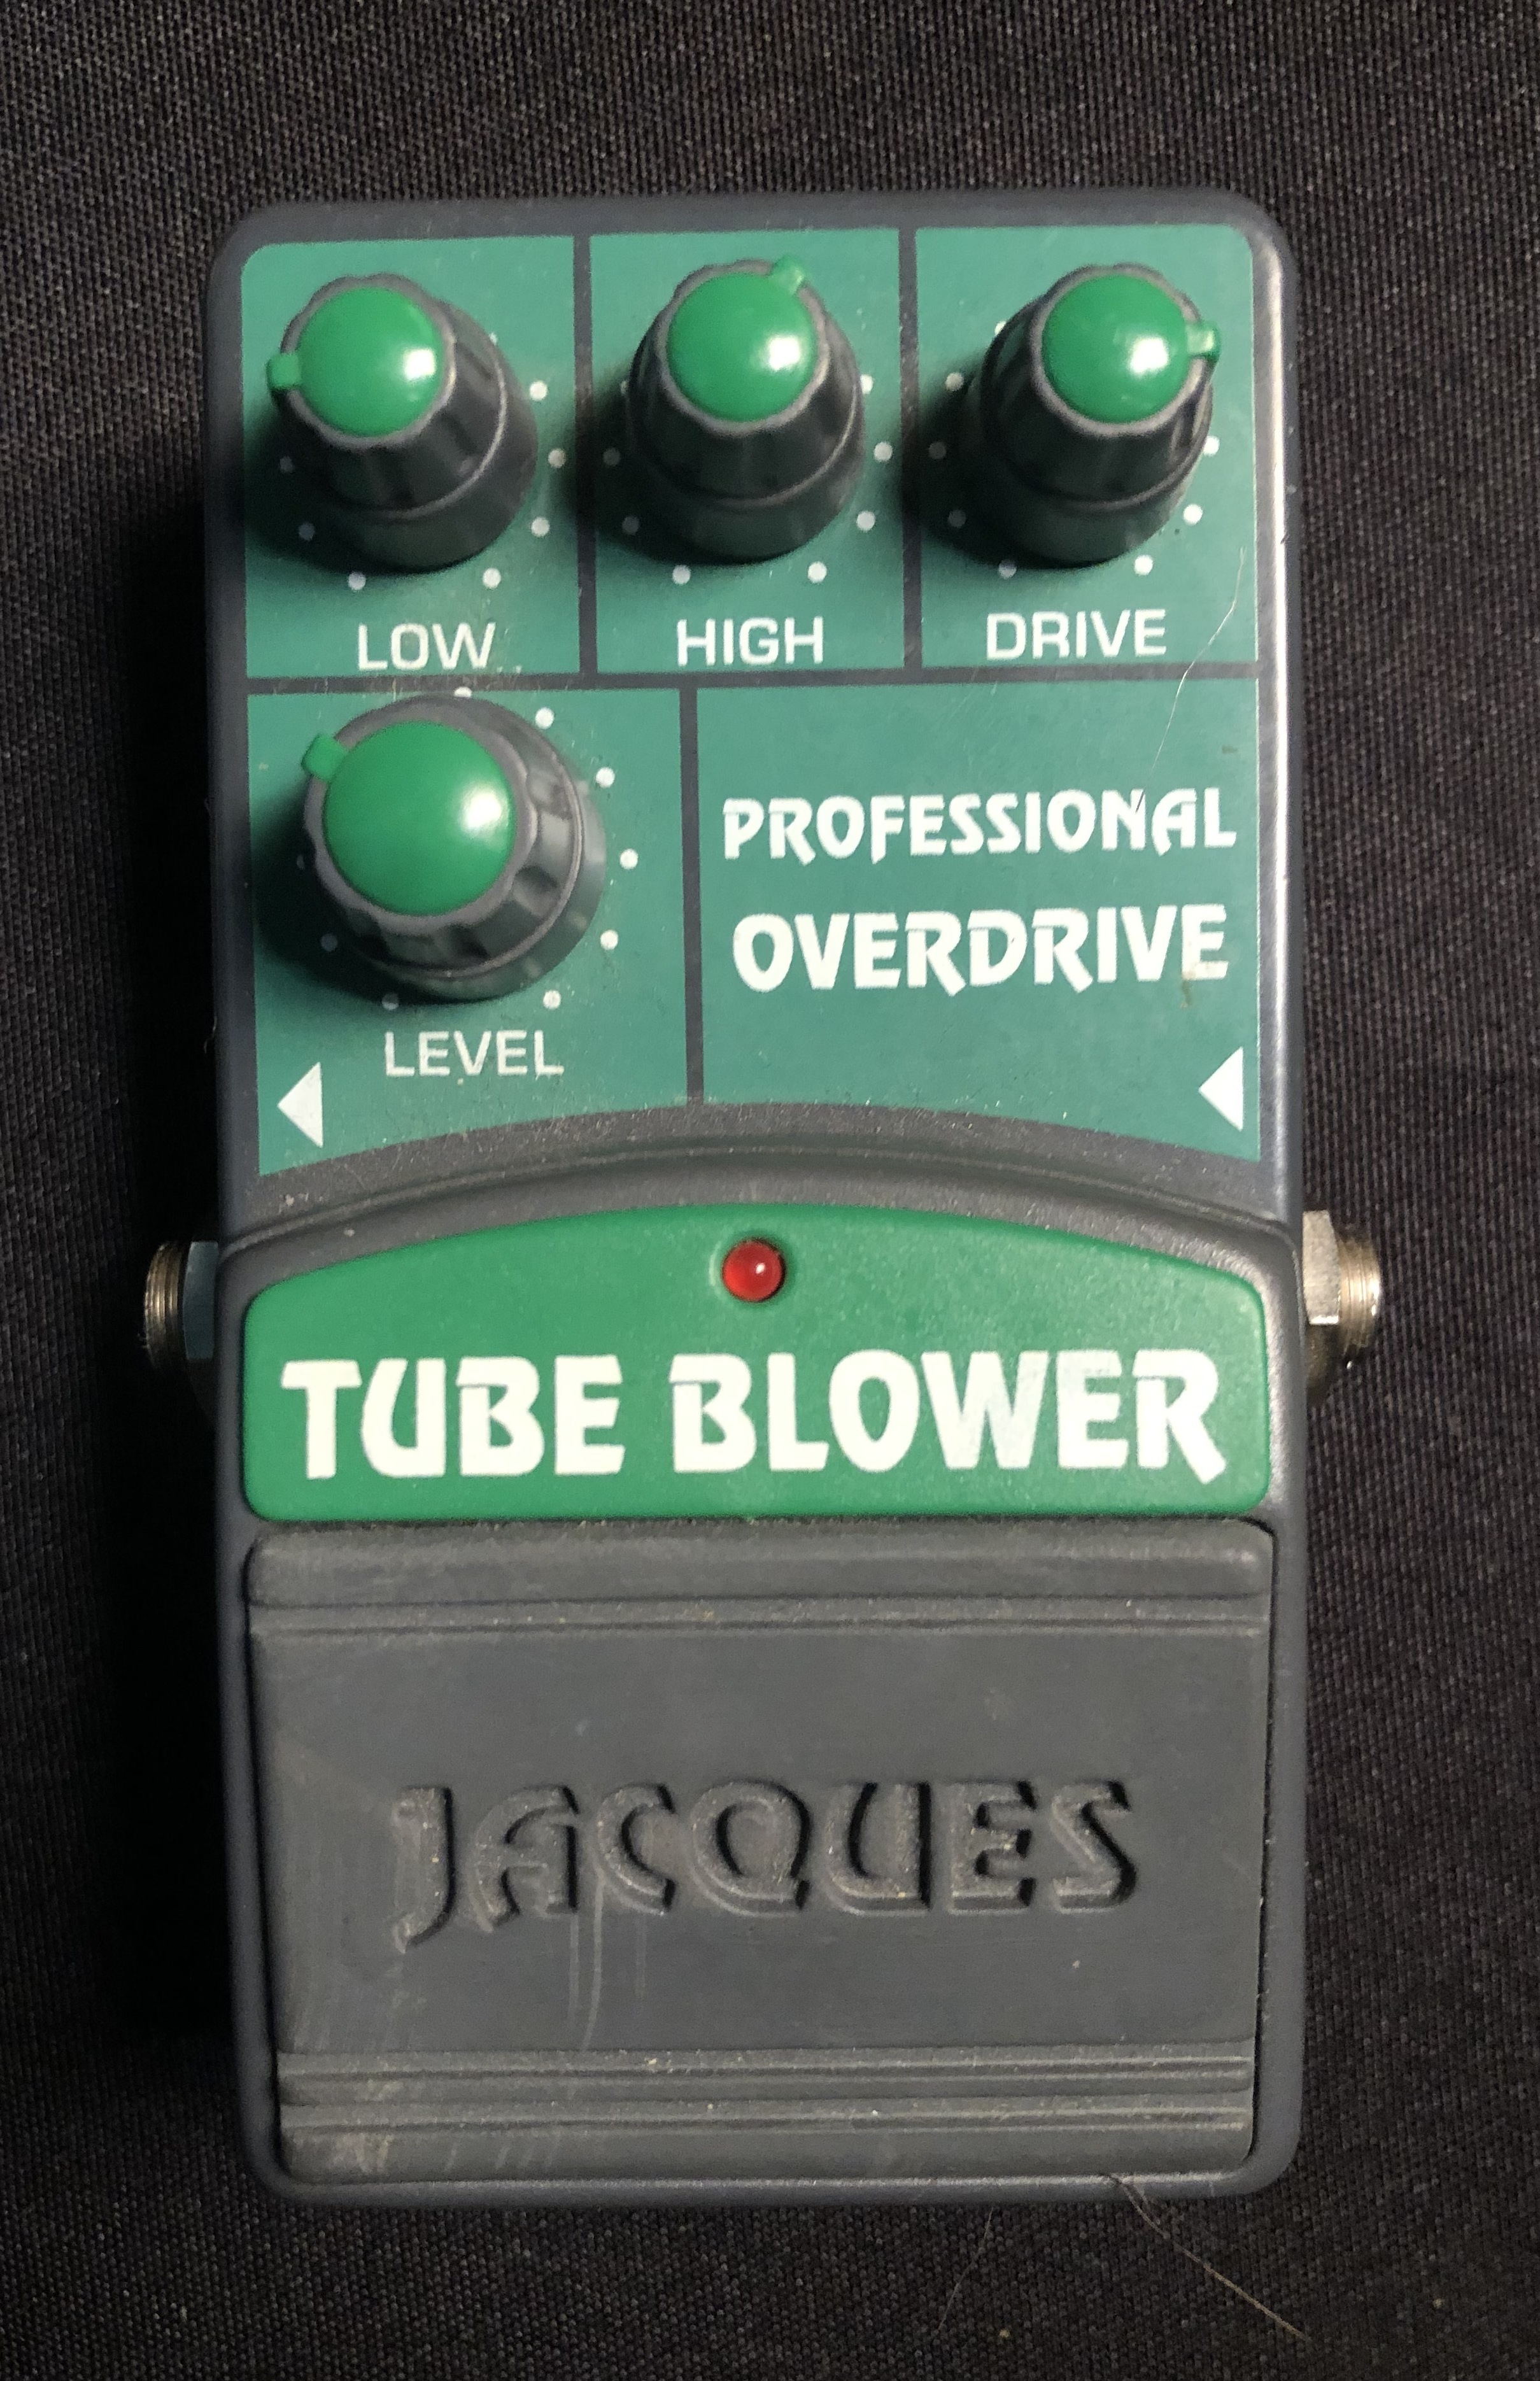 JACQUES - Tube Blower Professional Overdrive Pedal